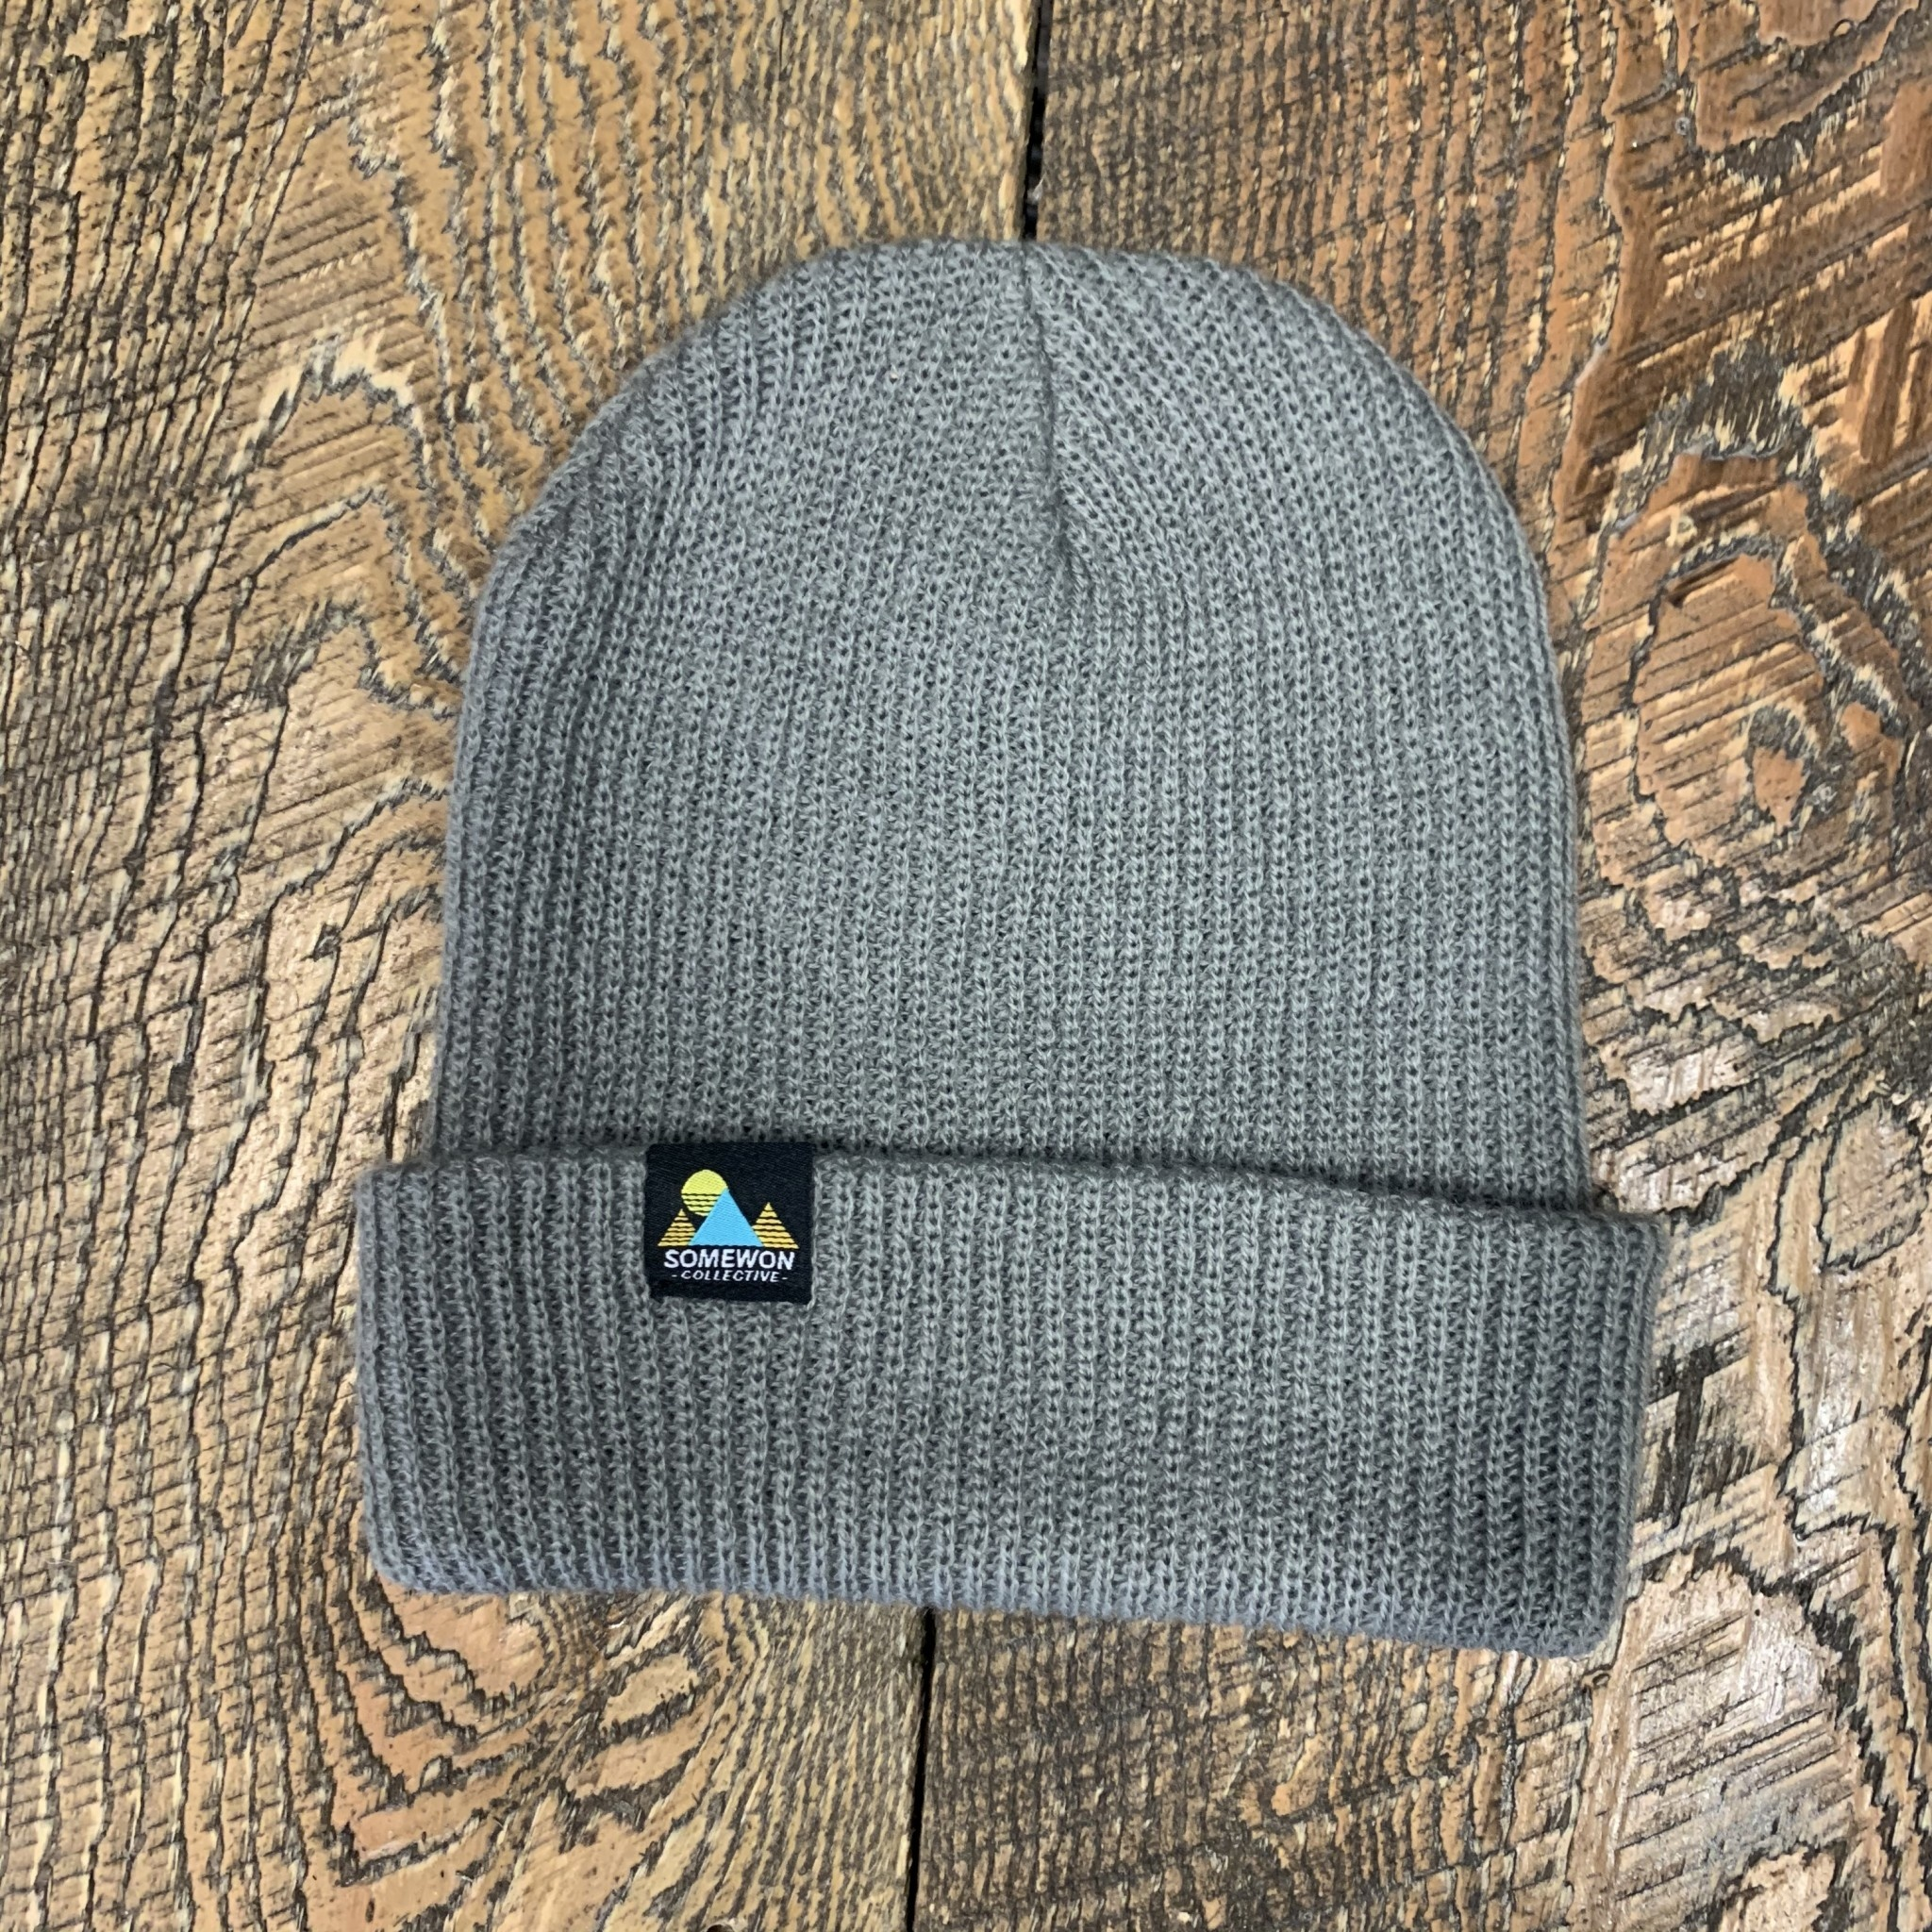 Somewon Collective SomewonCollective - Flip Toque - Storm